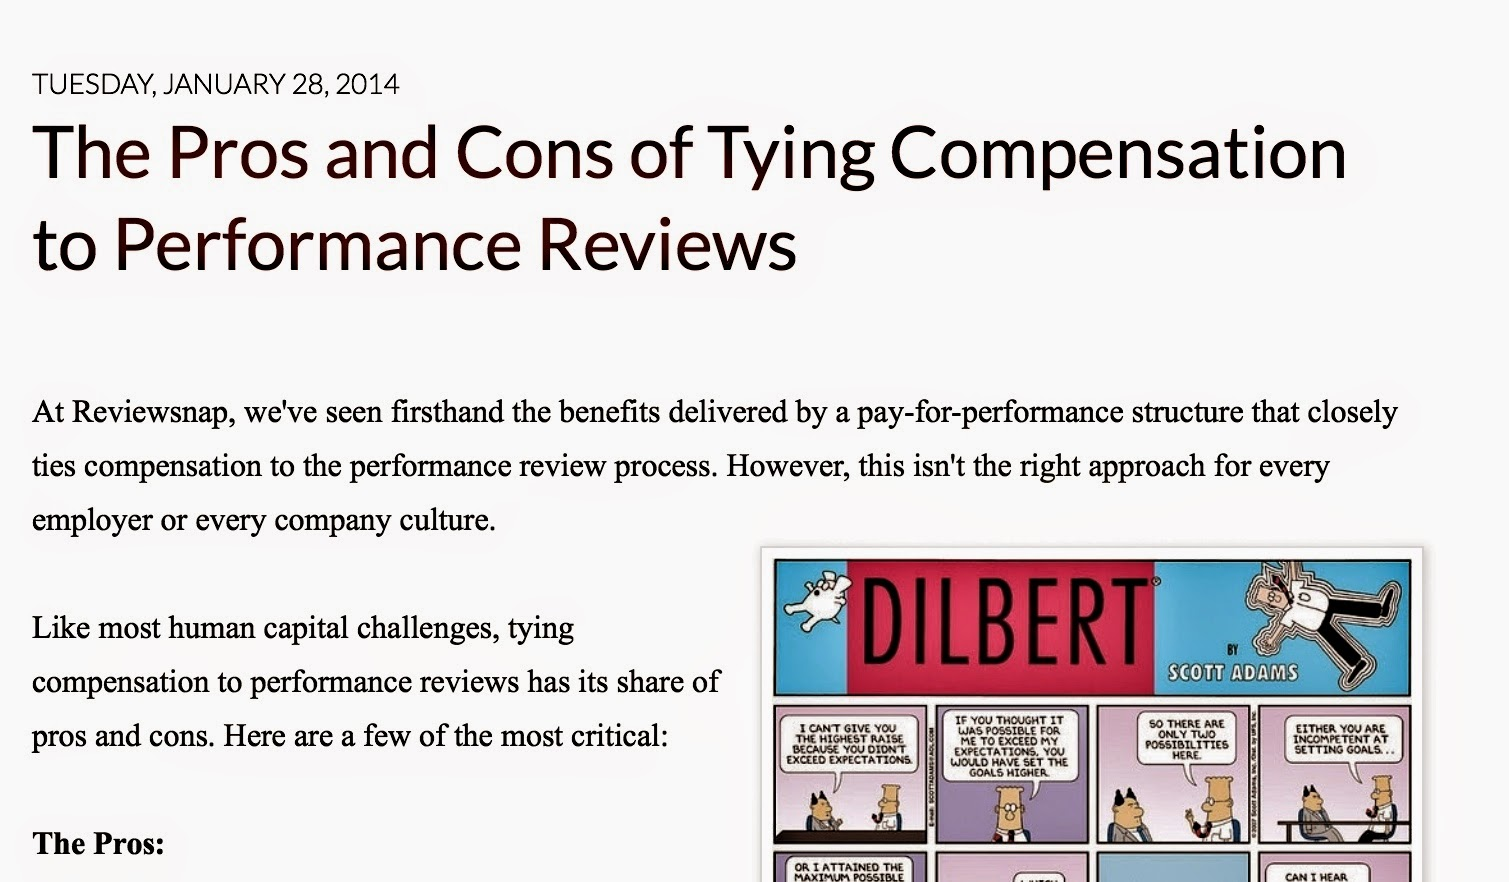 http://blog.reviewsnap.com/2014/01/the-pros-and-cons-of-tying-compensation.html